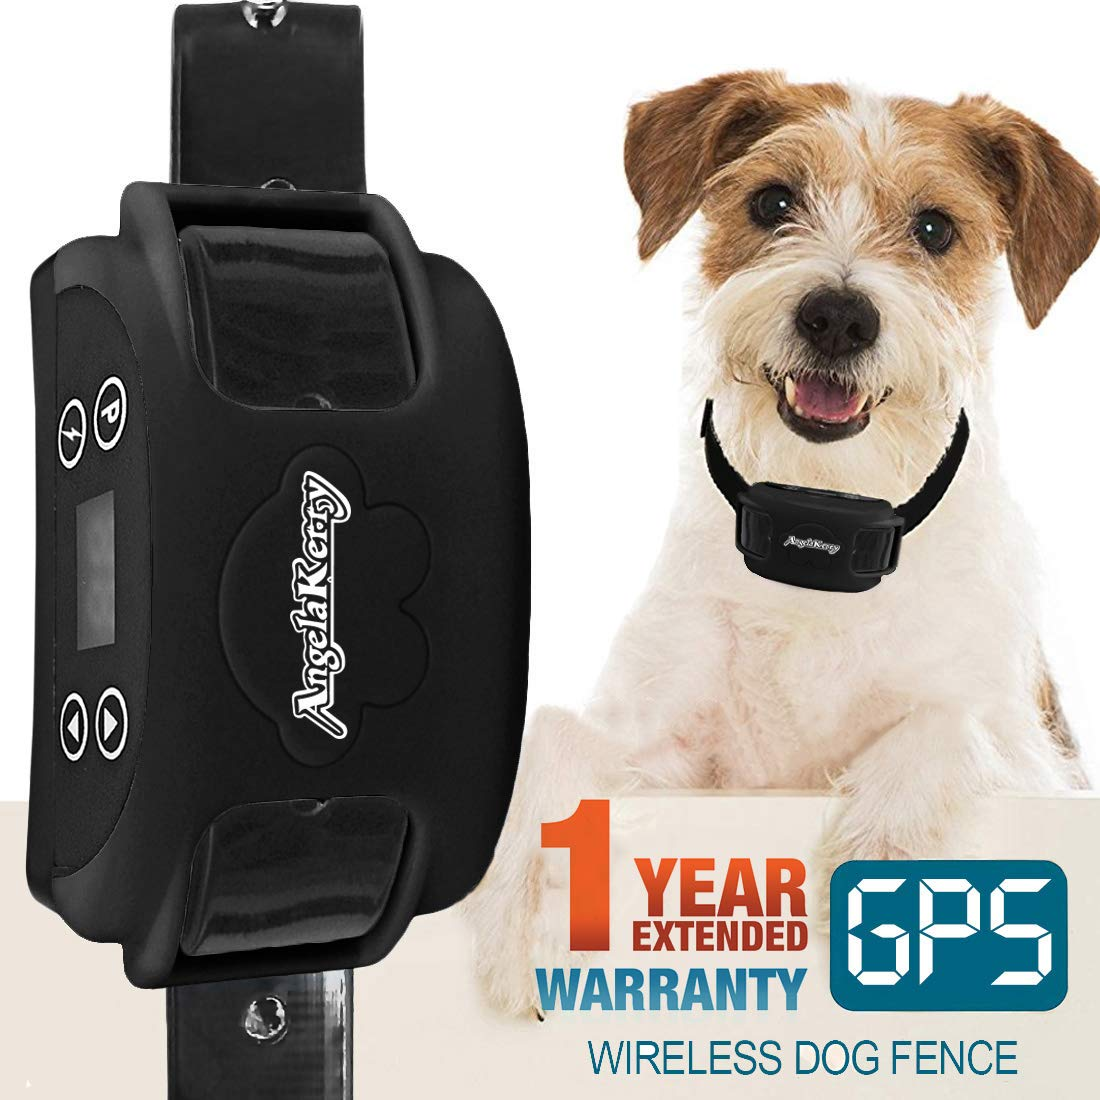 AngelaKerry Wireless Dog Fence System with GPS, Outdoor Pet Containment System Rechargeable Waterproof Collar 850YD Remote for 15lbs-120lbs Dogs (Black, 1pc GPS Receiver by 1 Dog) by AngelaKerry